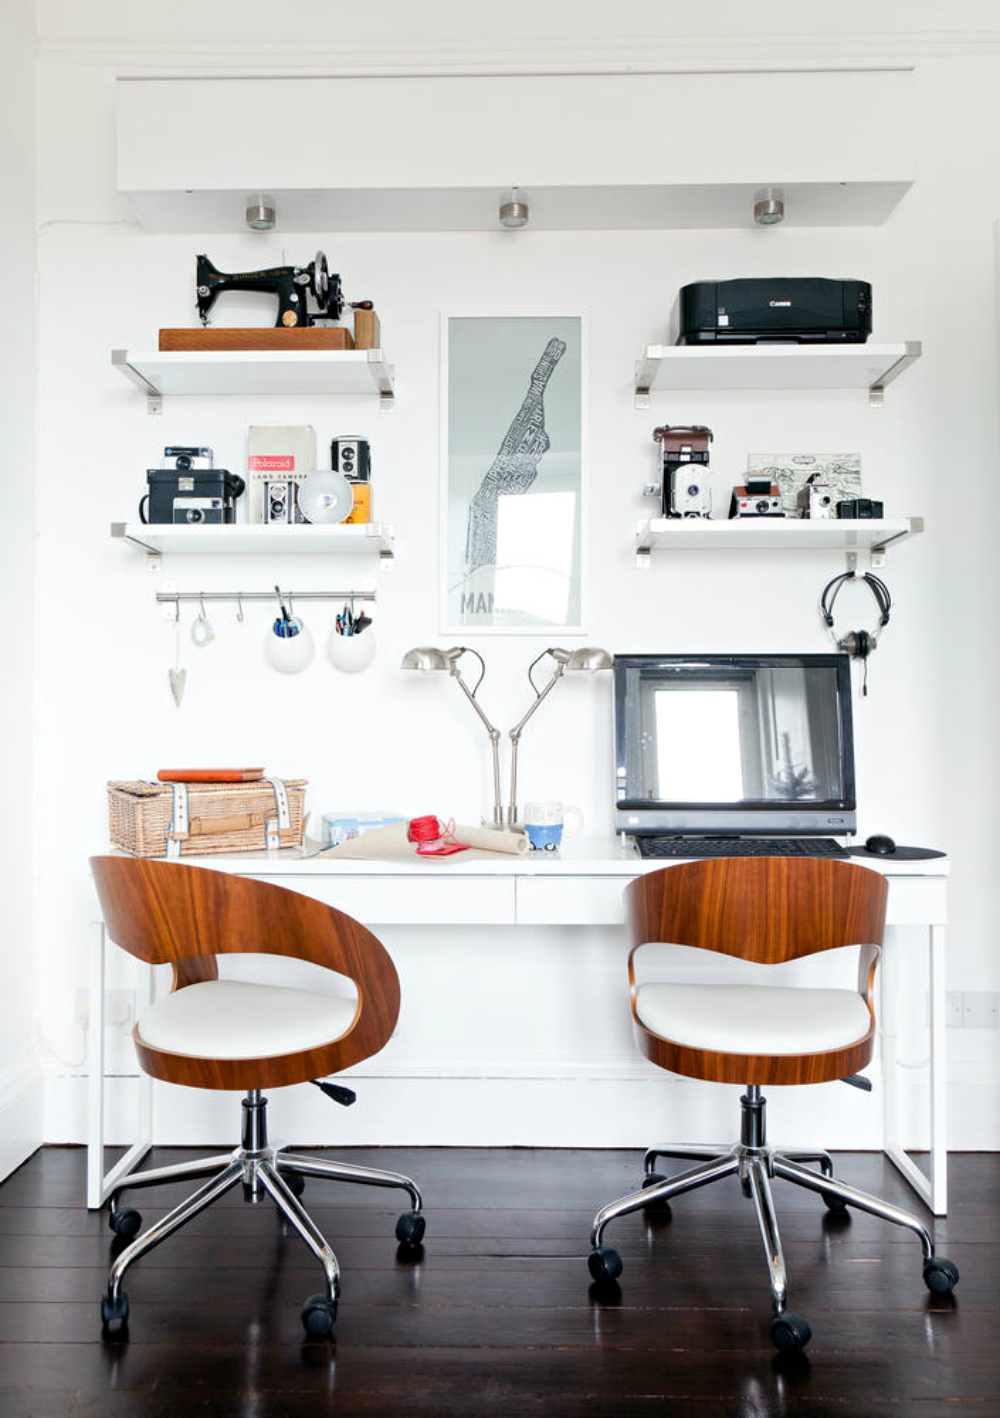 Get Home Design Ideas: 10 Home Office Design Ideas You Should Get Inspired By